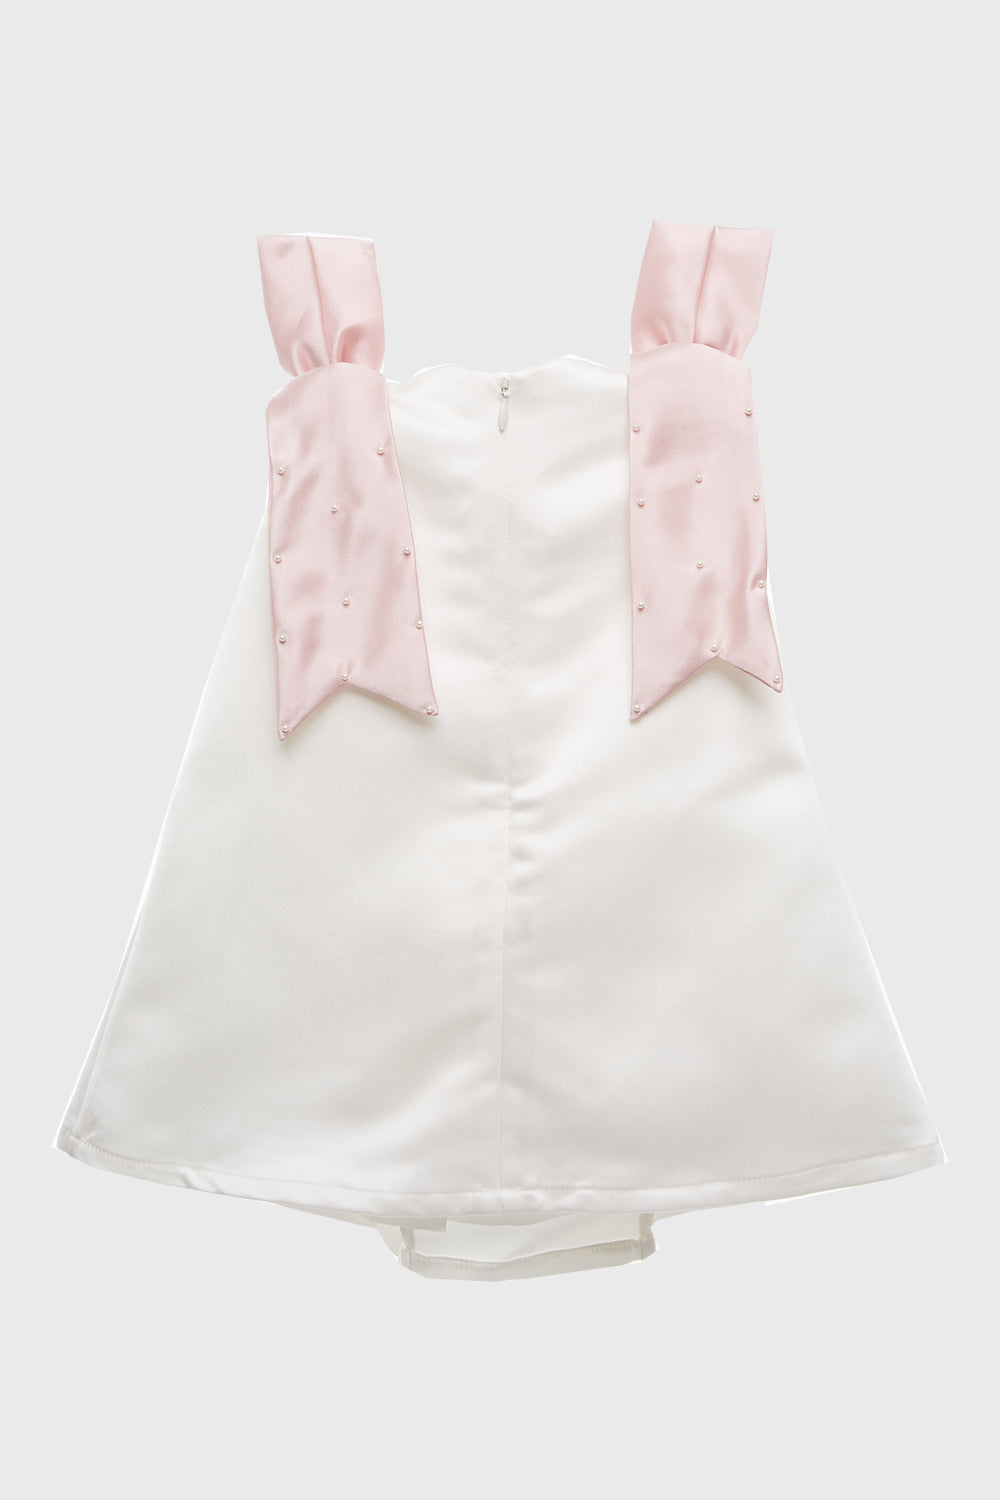 Anaia Dress in White Pink